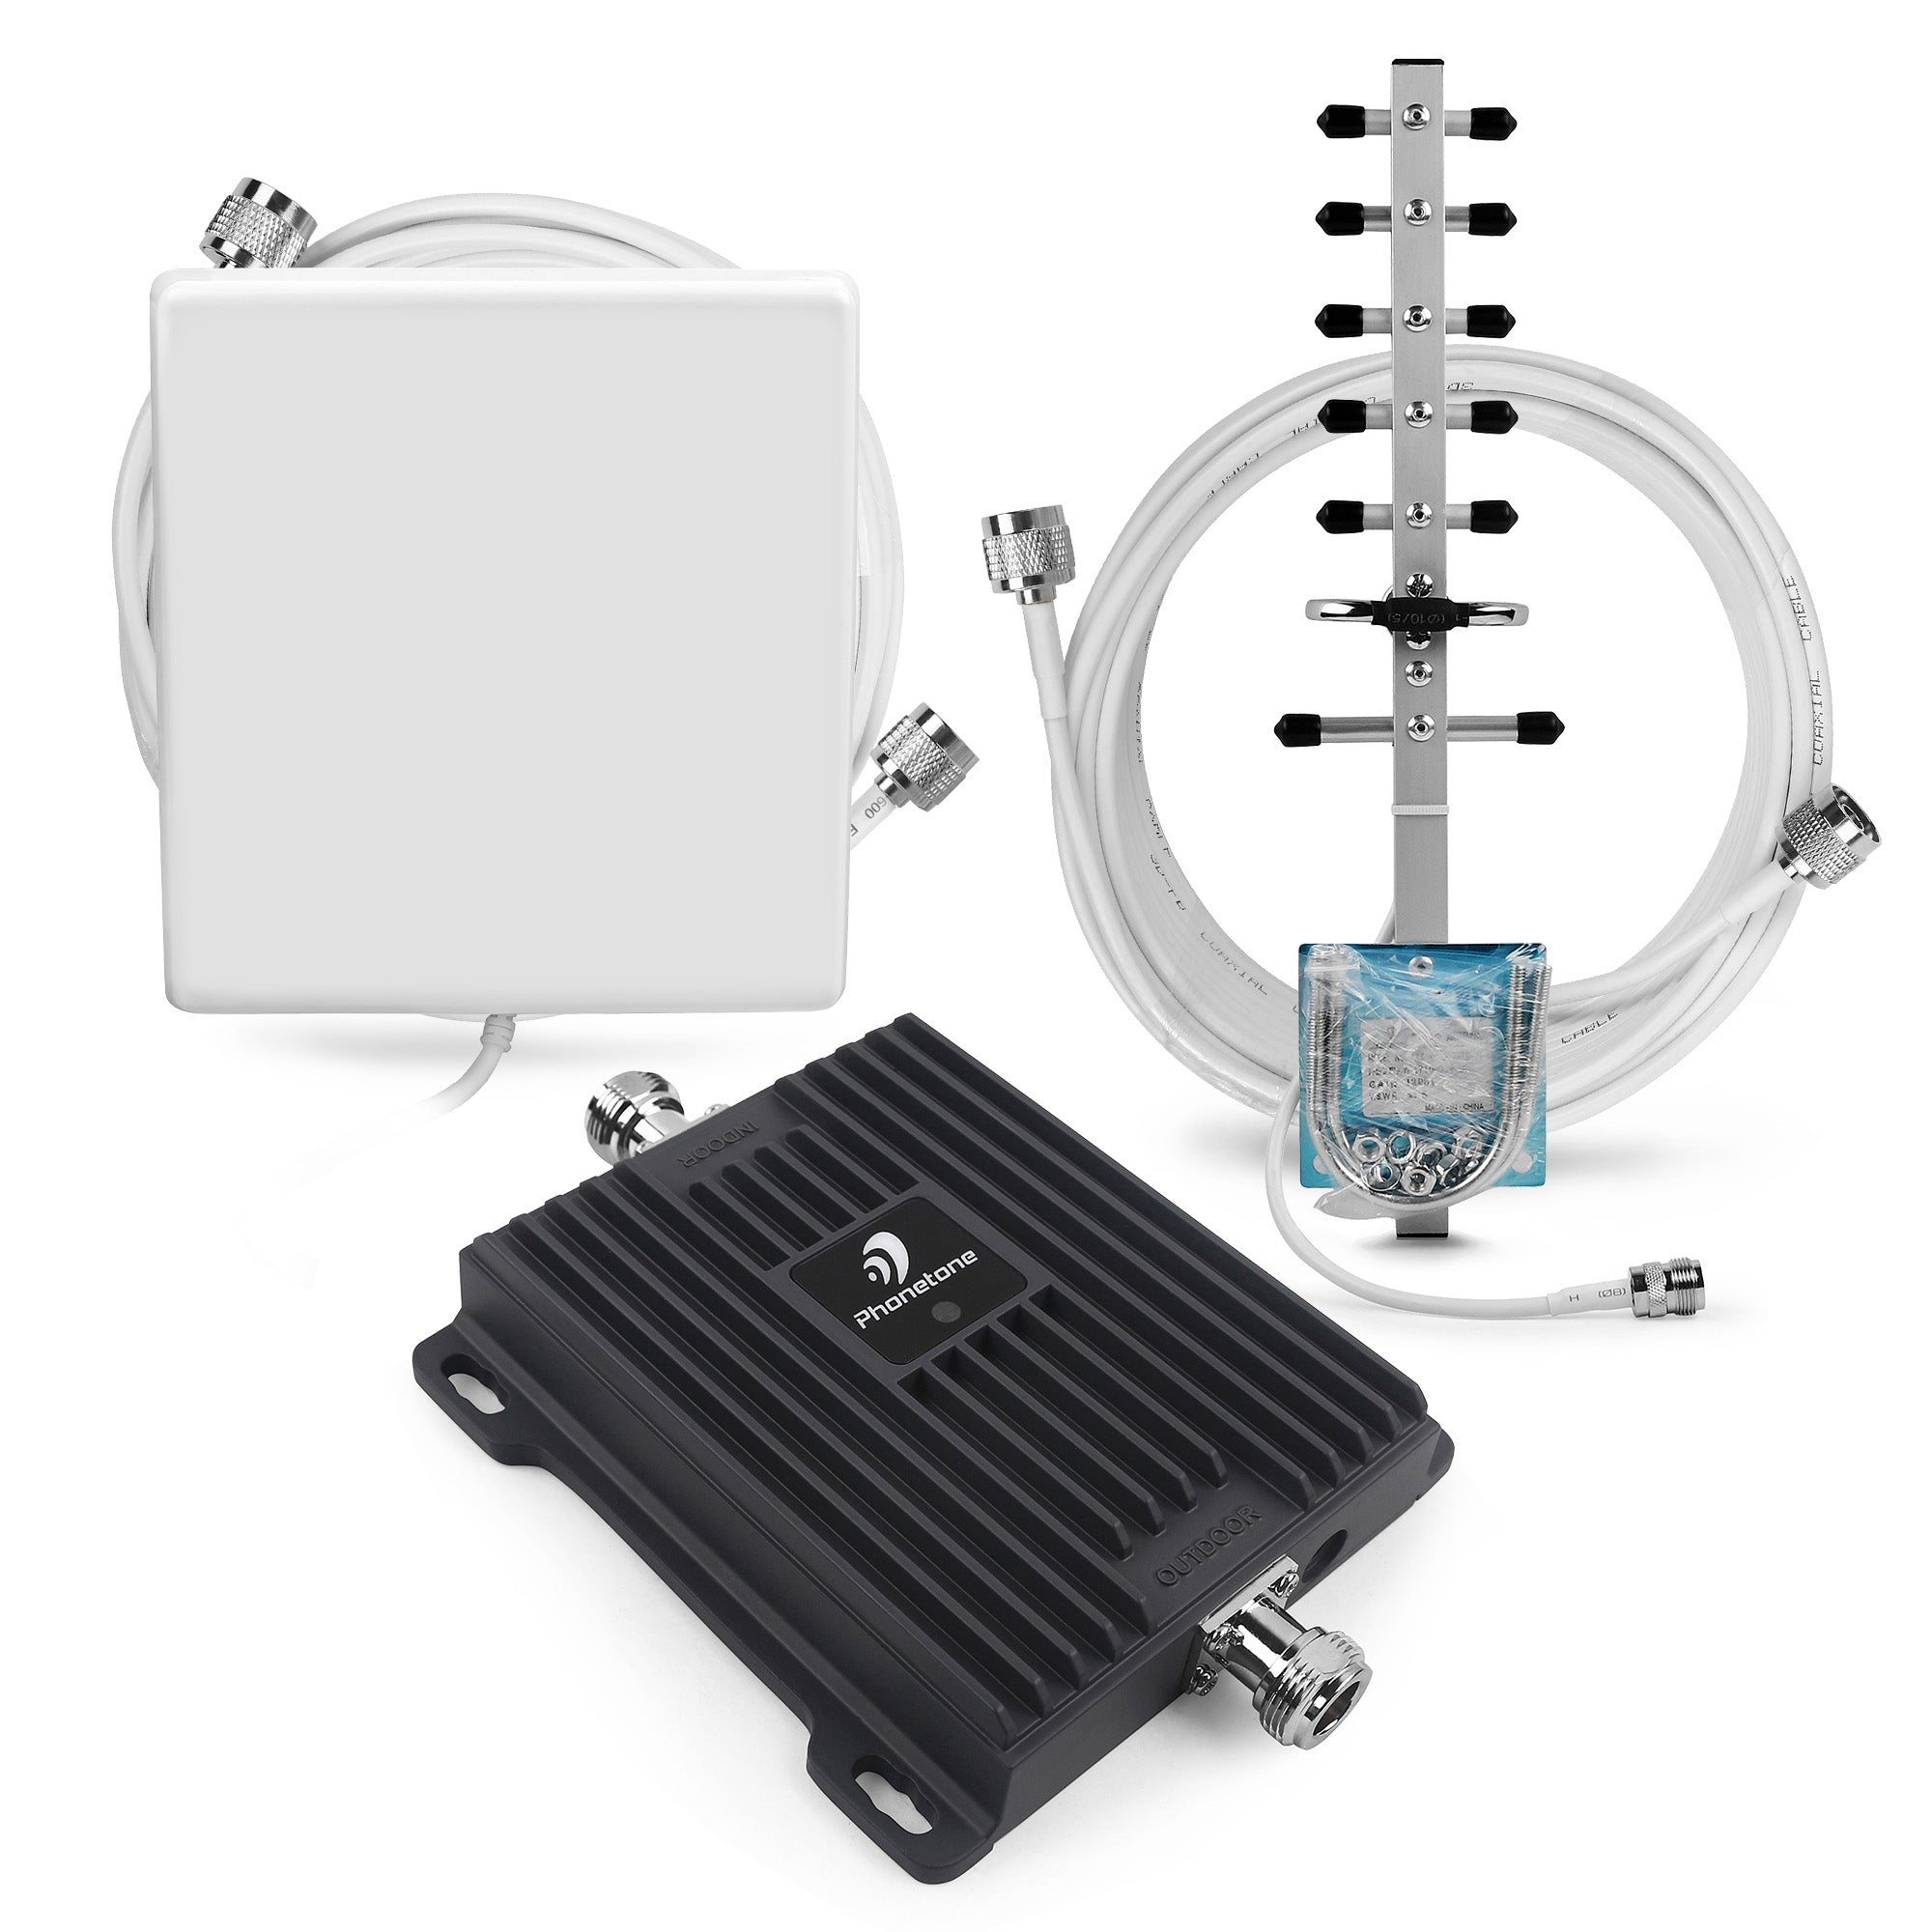 2100MHz 65dB Mobile Phone Signal Booster Kit with Yagi and Panel Antenna